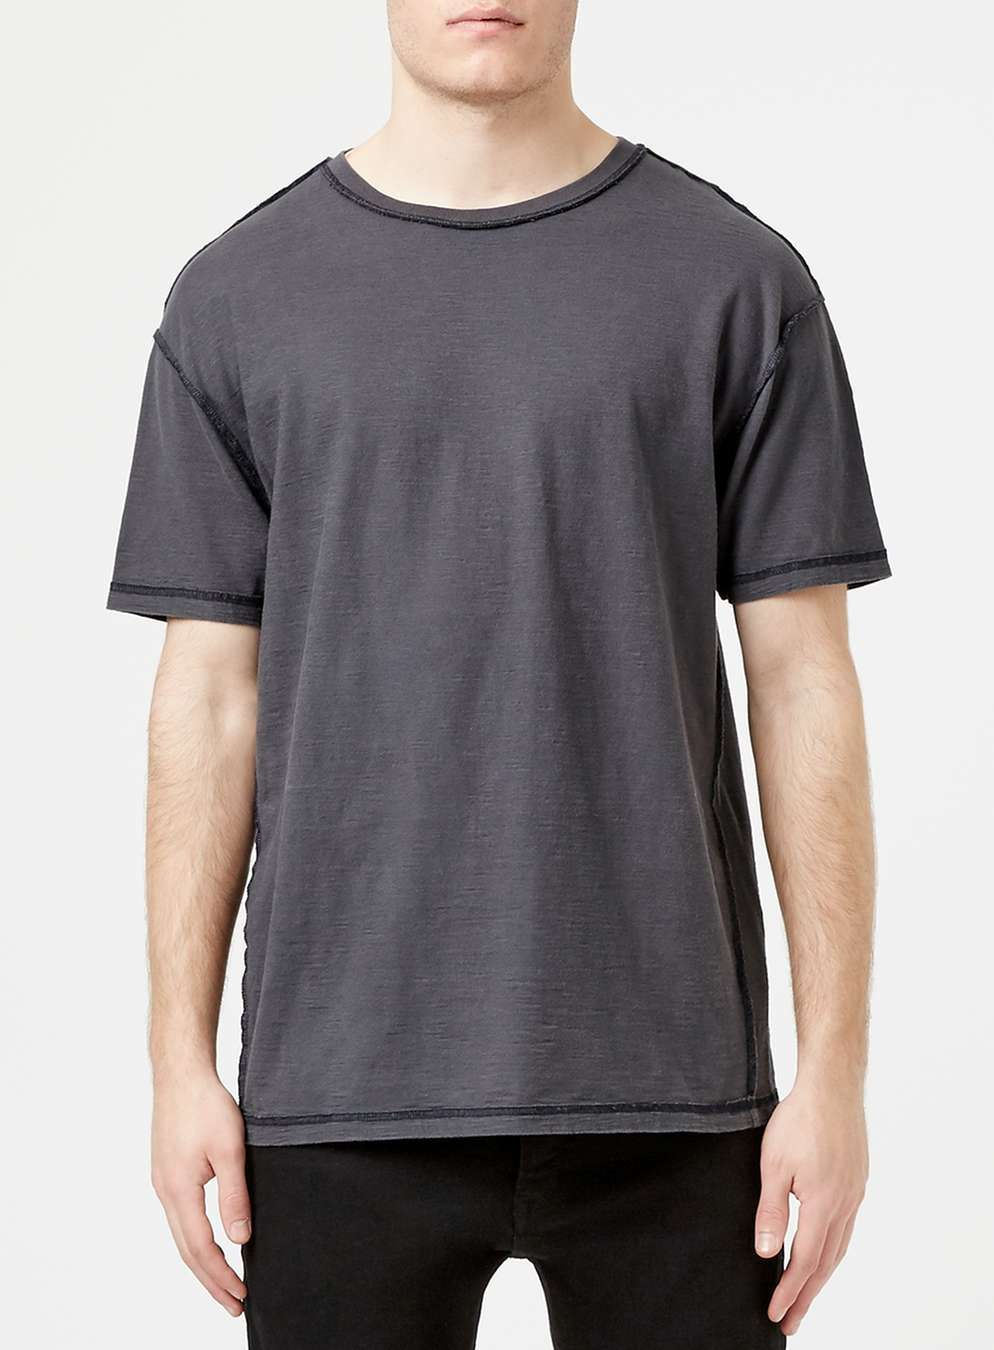 Washed Black Slubby Oversized T-Shirt - Men's T-Shirts & Vests ...